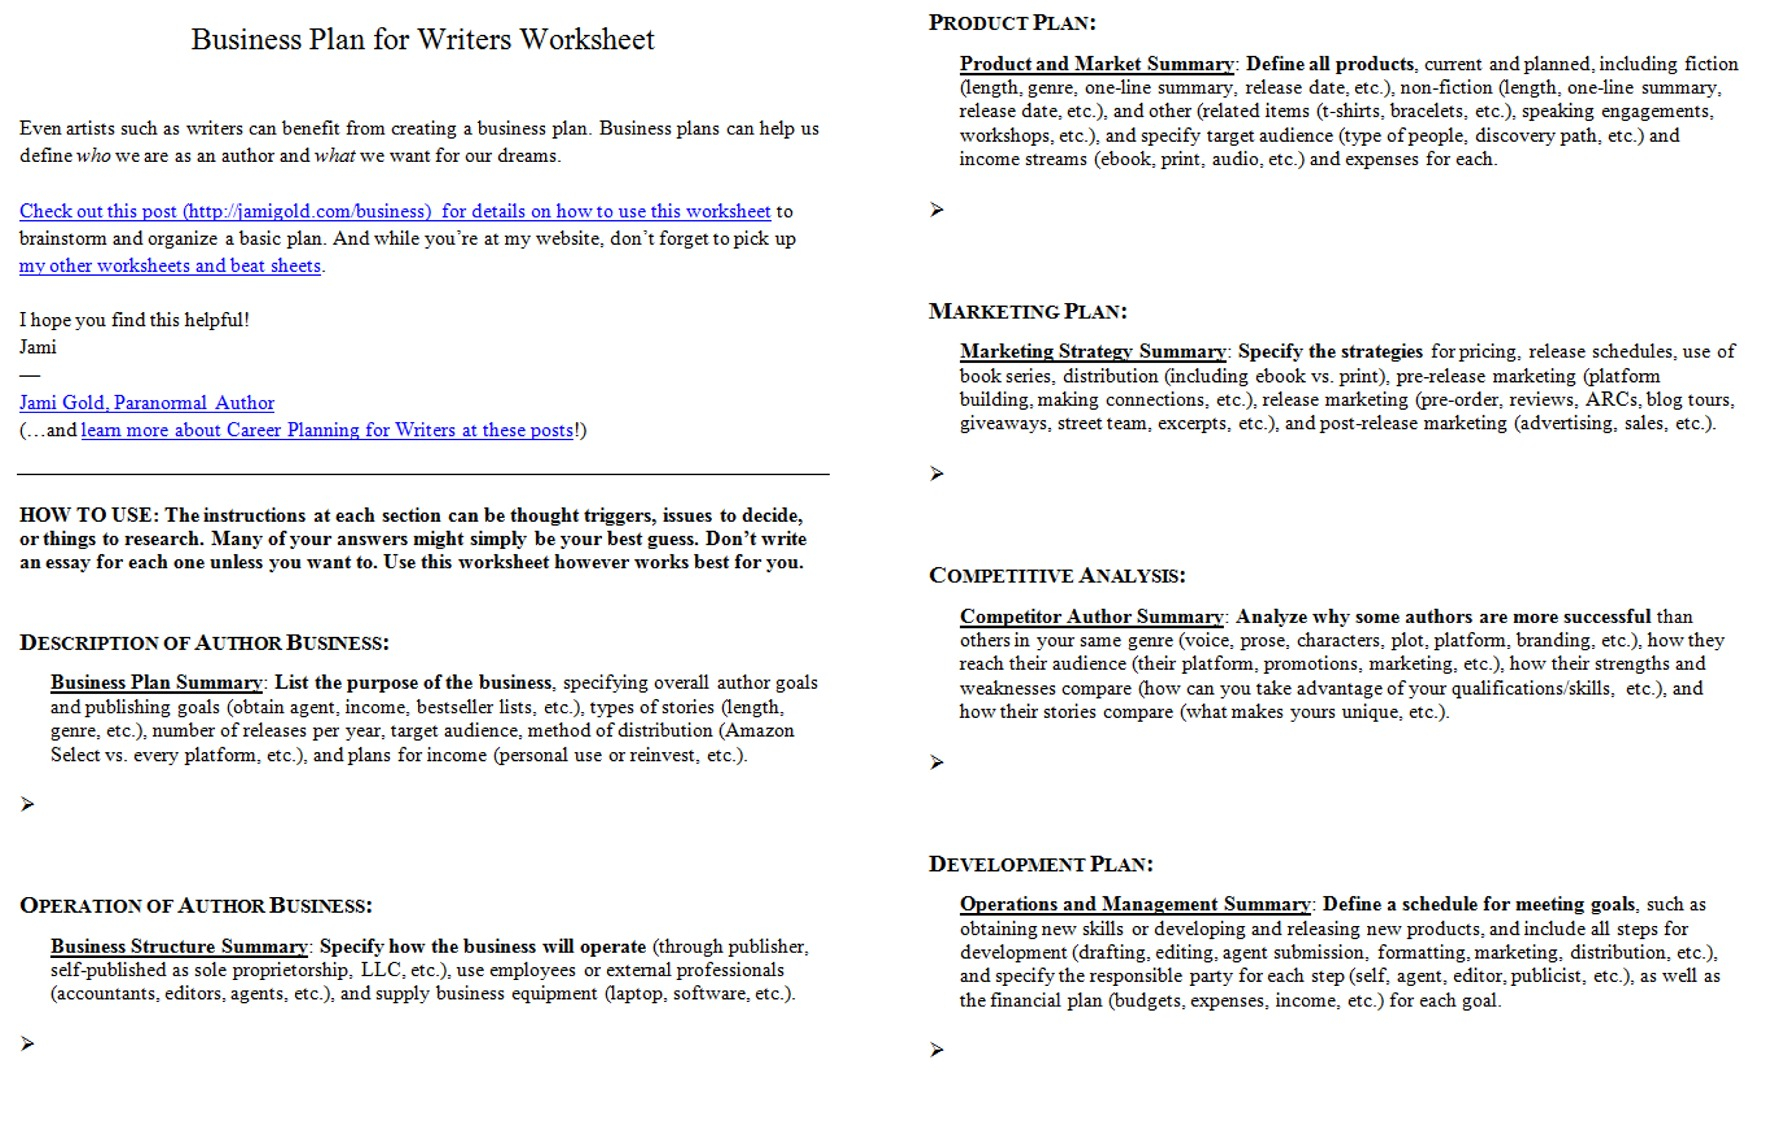 Proatmealus  Unusual Worksheets For Writers  Jami Gold Paranormal Author With Excellent Screen Shot Of Both Pages Of The Business Plan For Writers Worksheet With Nice Geometry Transversal Worksheet Also Conflict Resolution Worksheets For Students In Addition Personification And Hyperbole Worksheets And Division Timed Test Worksheet As Well As Egyptian Math Worksheet Additionally Expanded Form Worksheets St Grade From Jamigoldcom With Proatmealus  Excellent Worksheets For Writers  Jami Gold Paranormal Author With Nice Screen Shot Of Both Pages Of The Business Plan For Writers Worksheet And Unusual Geometry Transversal Worksheet Also Conflict Resolution Worksheets For Students In Addition Personification And Hyperbole Worksheets From Jamigoldcom